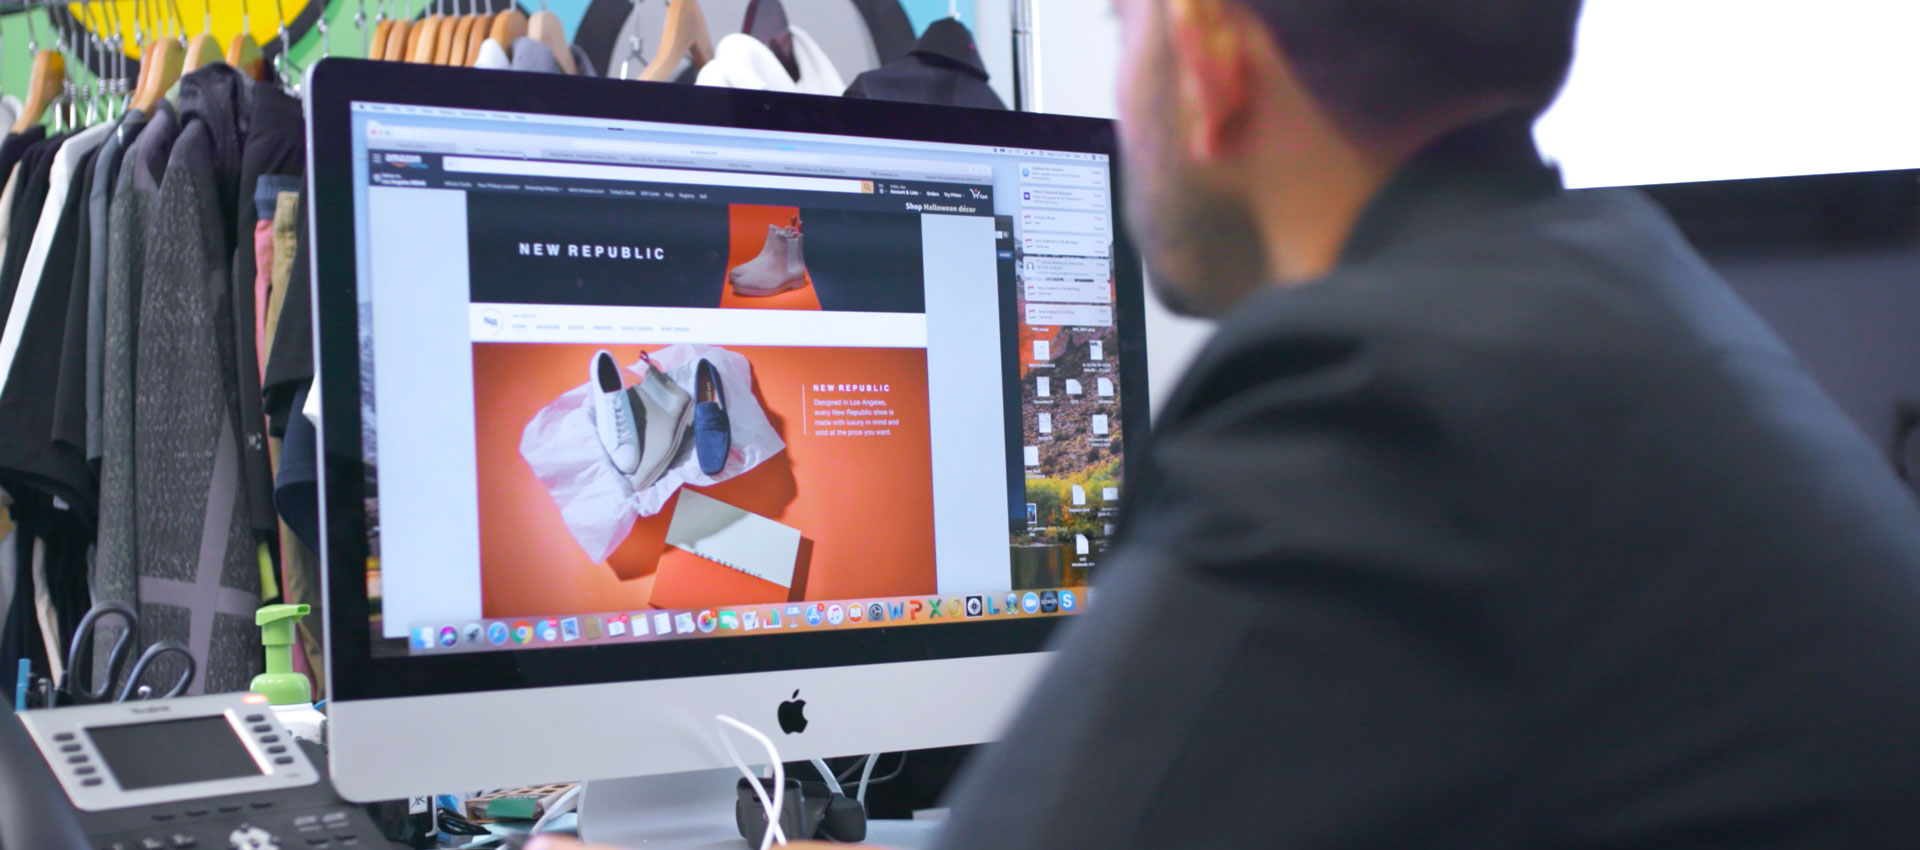 A man looking at a computer screen showing an online store on amazon.com for the fashion brand New Republic